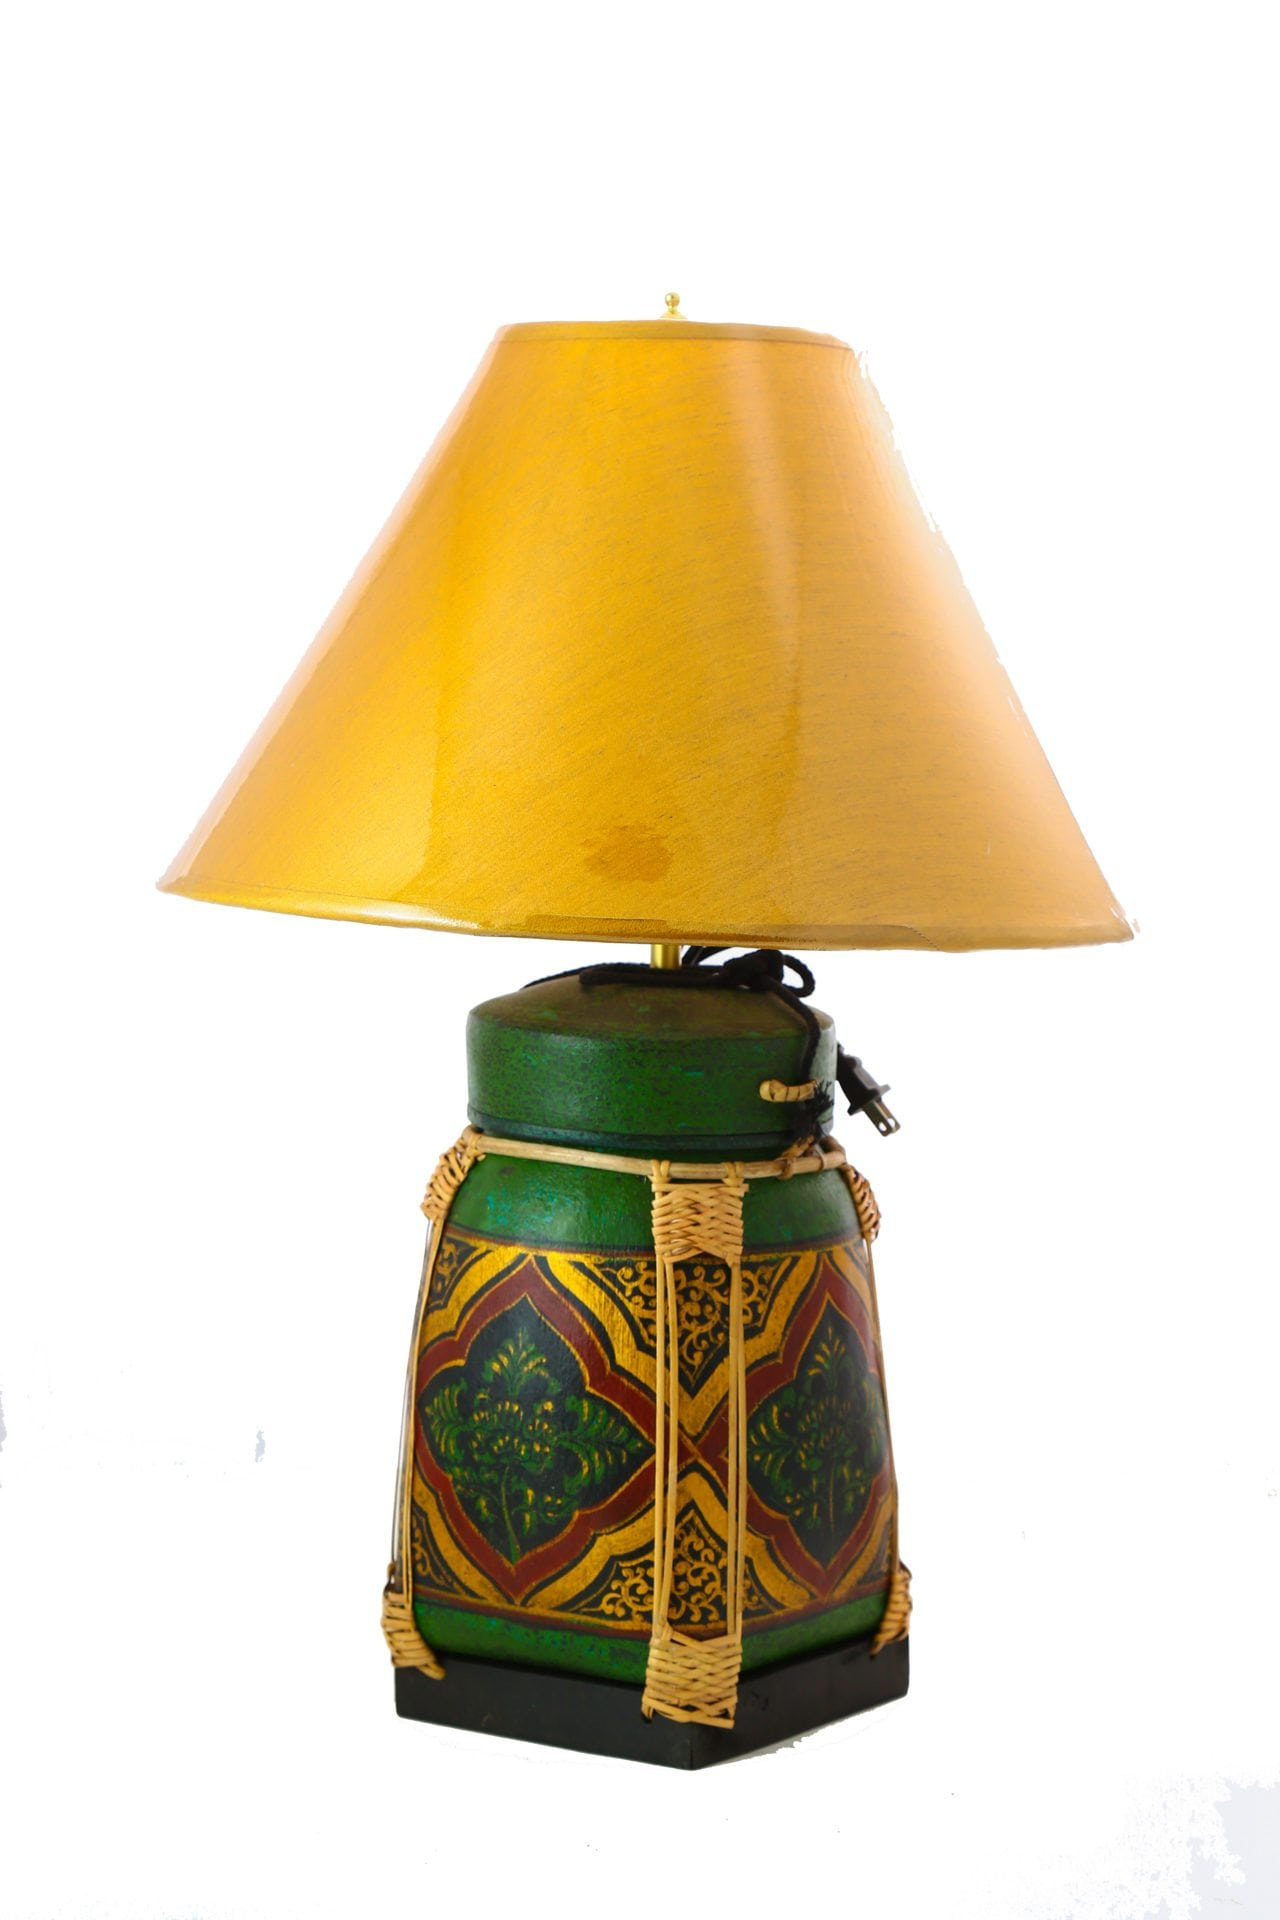 Chiang Mai Thailand Wholesale Handicrafts Direct From